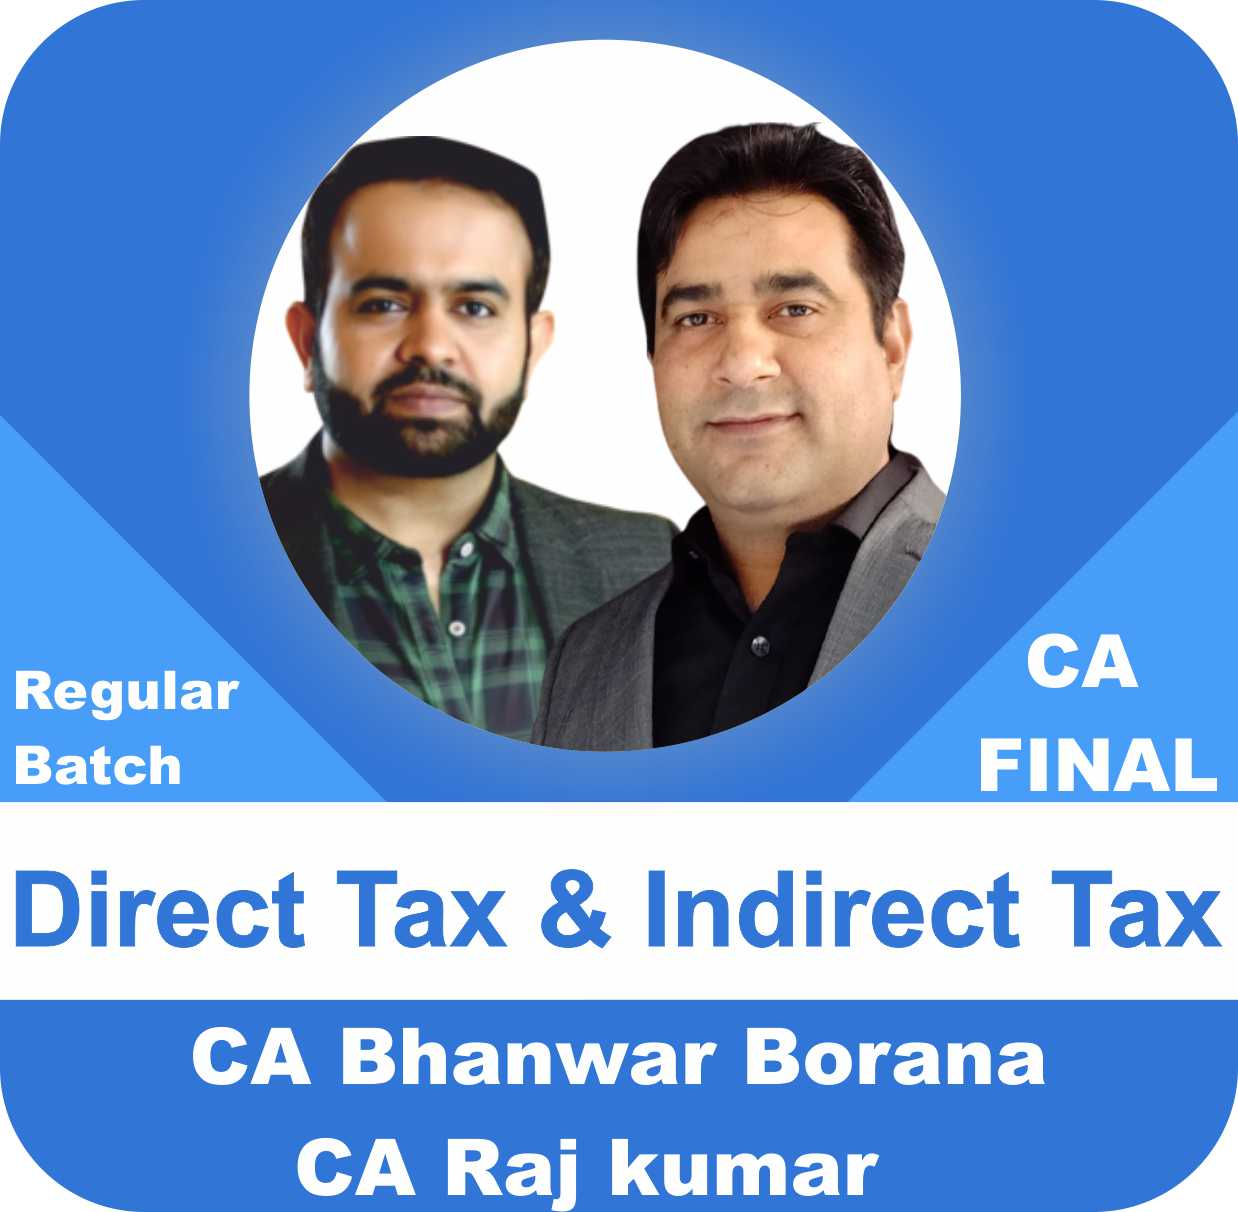 Direct Tax & Indirect Tax Latest Regular Batch Combo